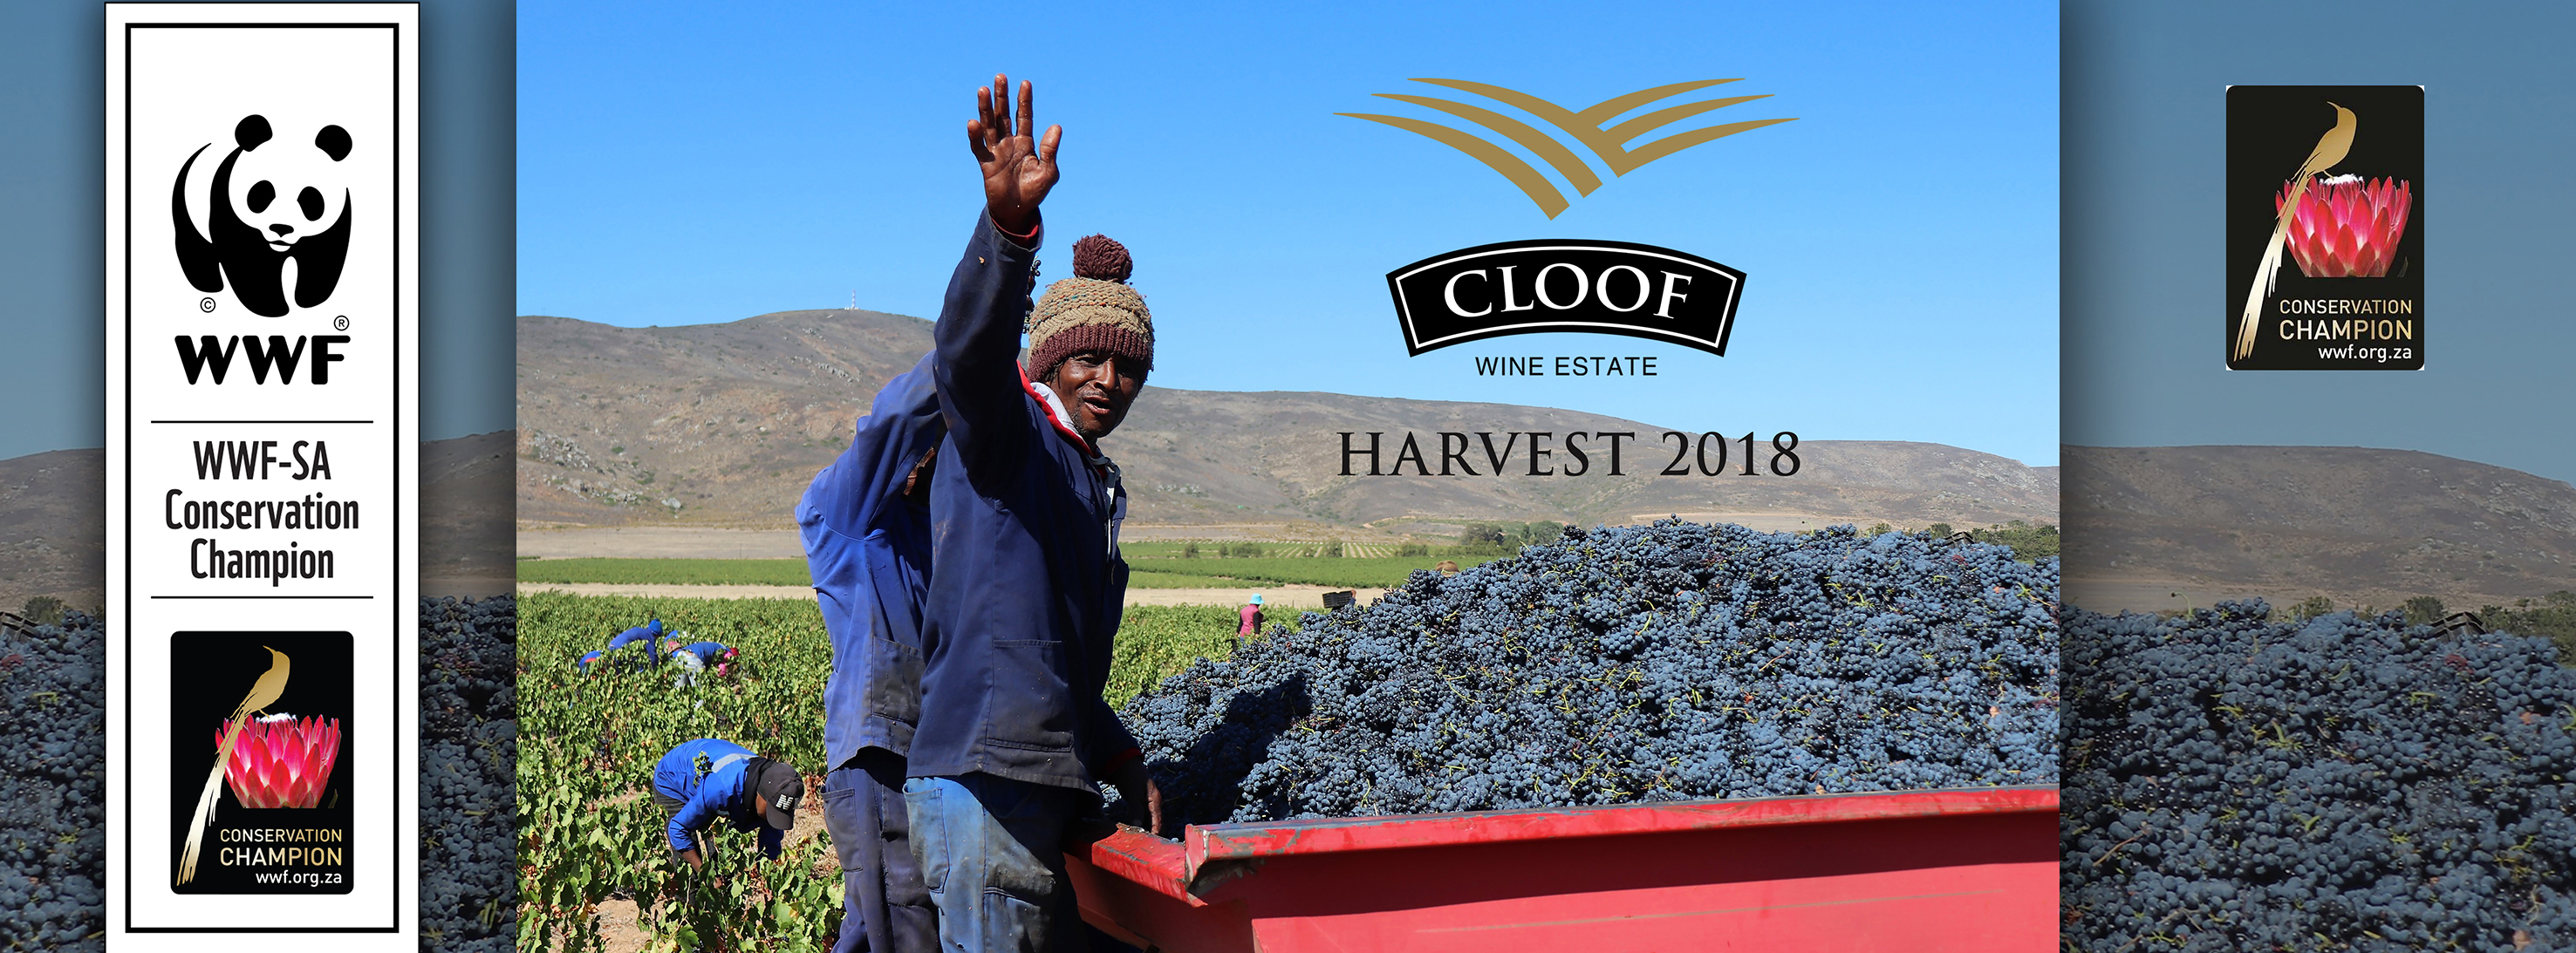 Cloof 2018 Harvest 67